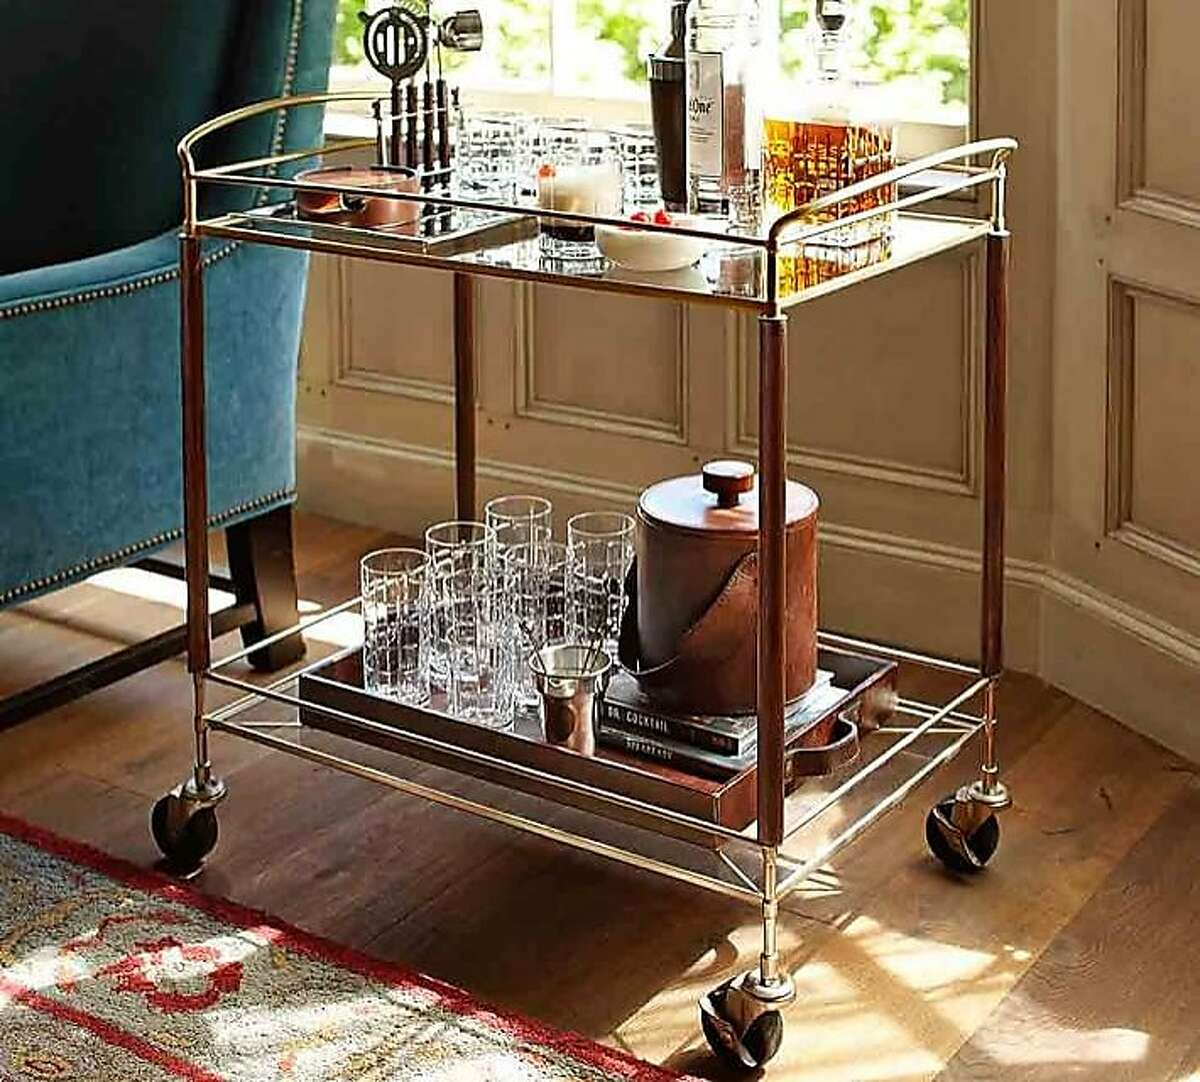 The Brady bar cart at Pottery Barn retails for $399.